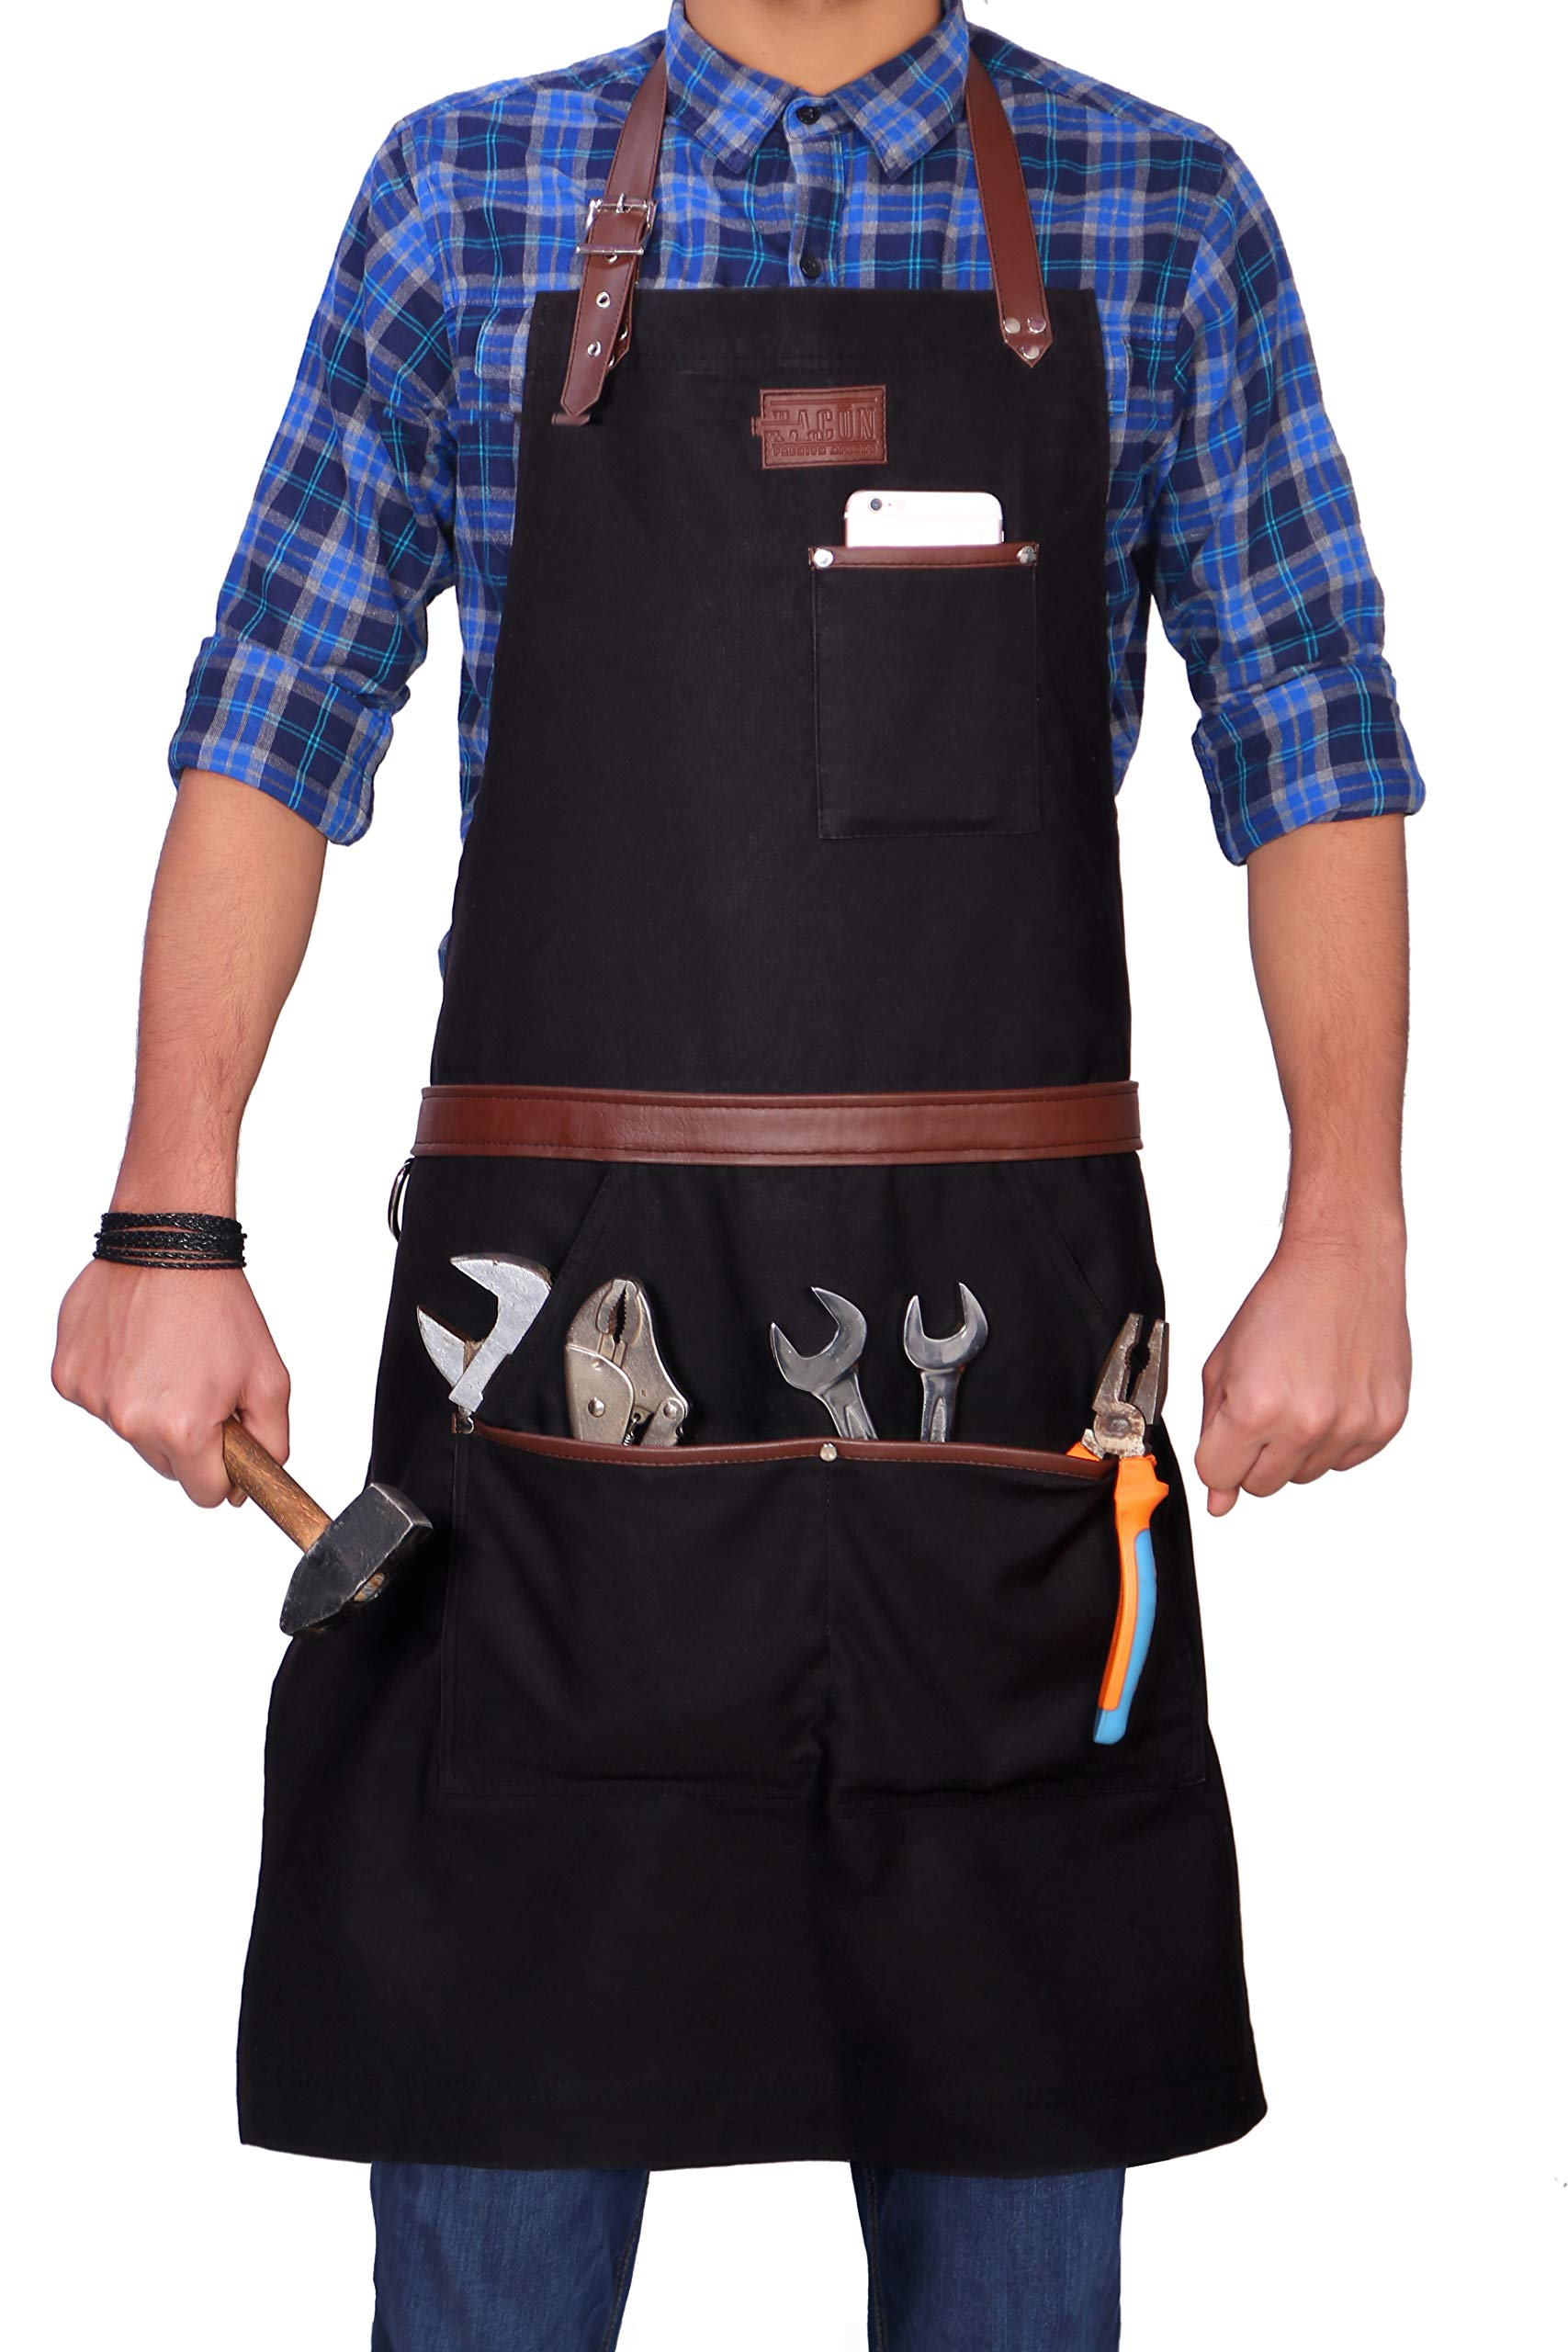 Facón Professional Grade Heavy Duty Work Apron for Tools - Multi-use, Adjustable with 5 Pockets and 2 Loops - Premium Quality Soft Waxed Canvas - Limited Edition - 35'' x 27'' (Black)